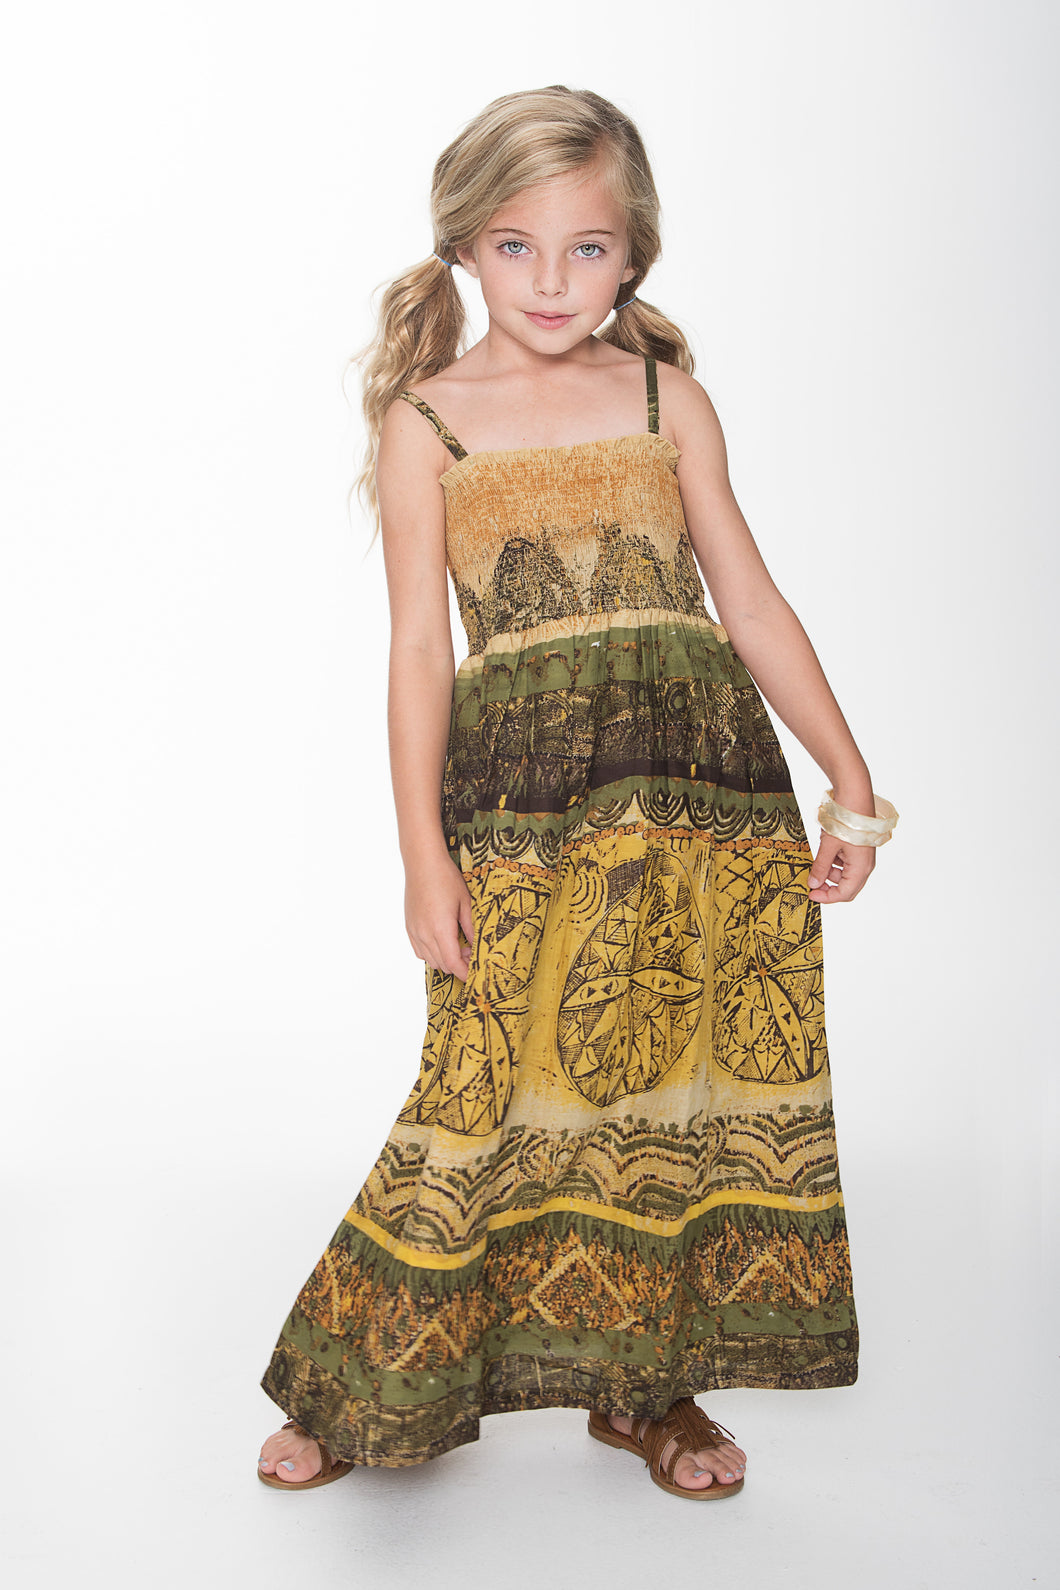 Mustard and Green Maxi Dress - Kids Wholesale Boutique Clothing, Dress - Girls Dresses, Yo Baby Wholesale - Yo Baby